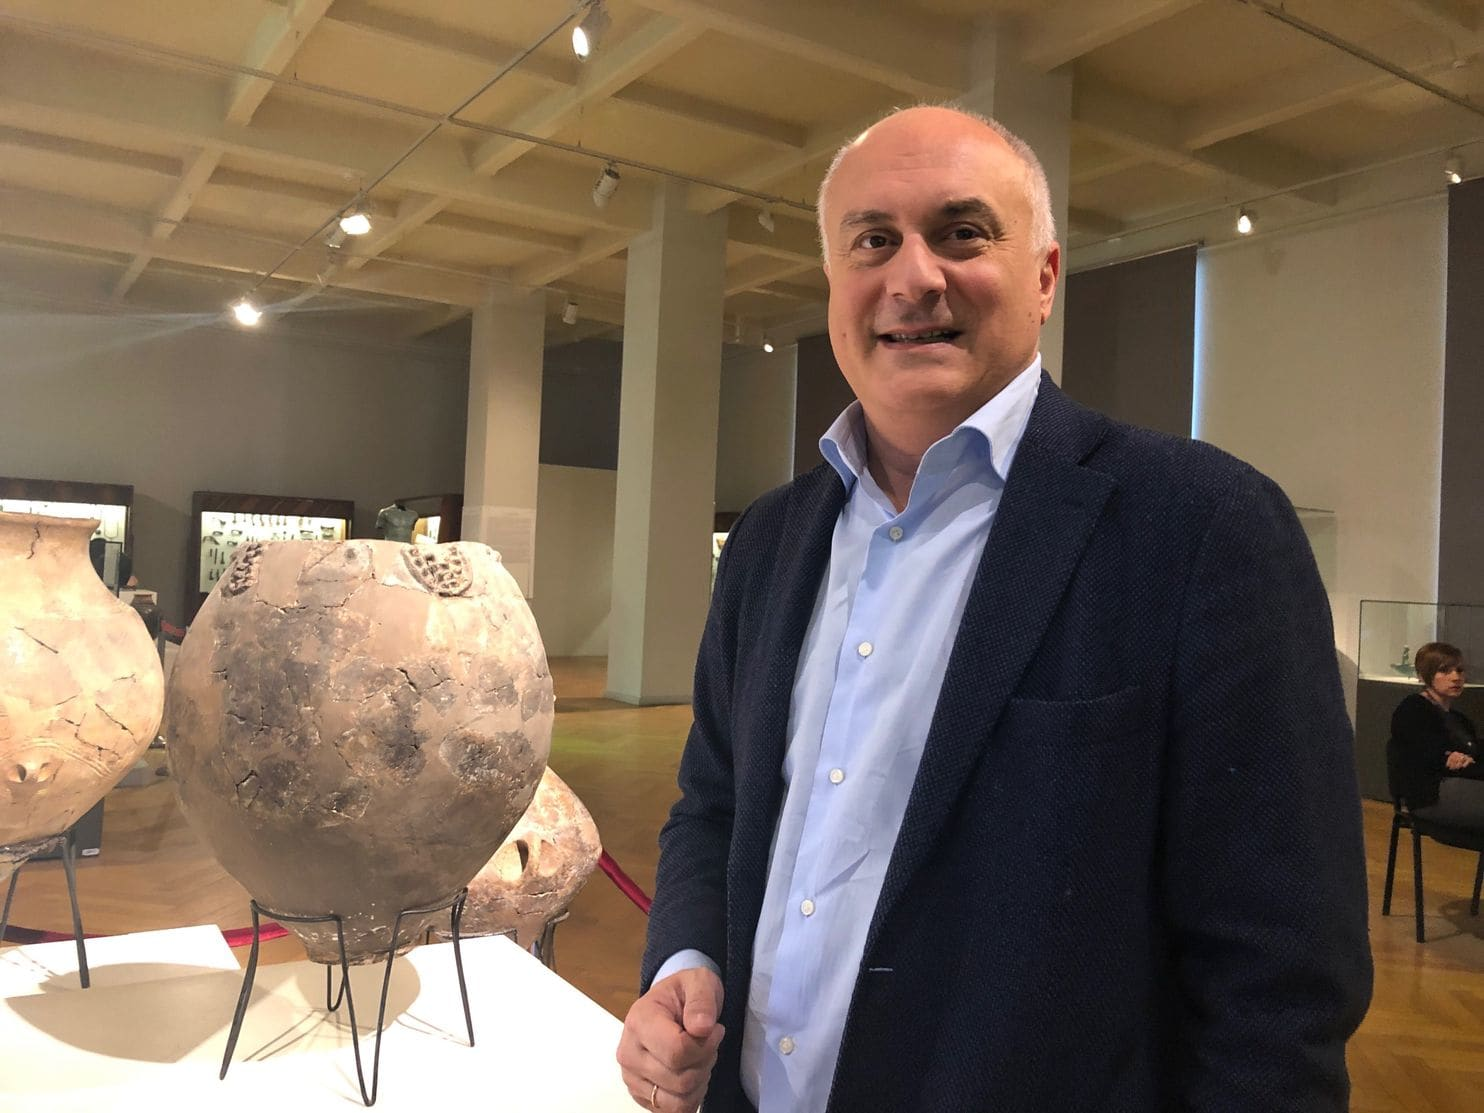 David Lordkipanidze, director of the National Museum of Georgia, with the Neolithic clay jar discovered in 2017 containing wine residue from 8,000 years ago. (Photo: The Washington Post)